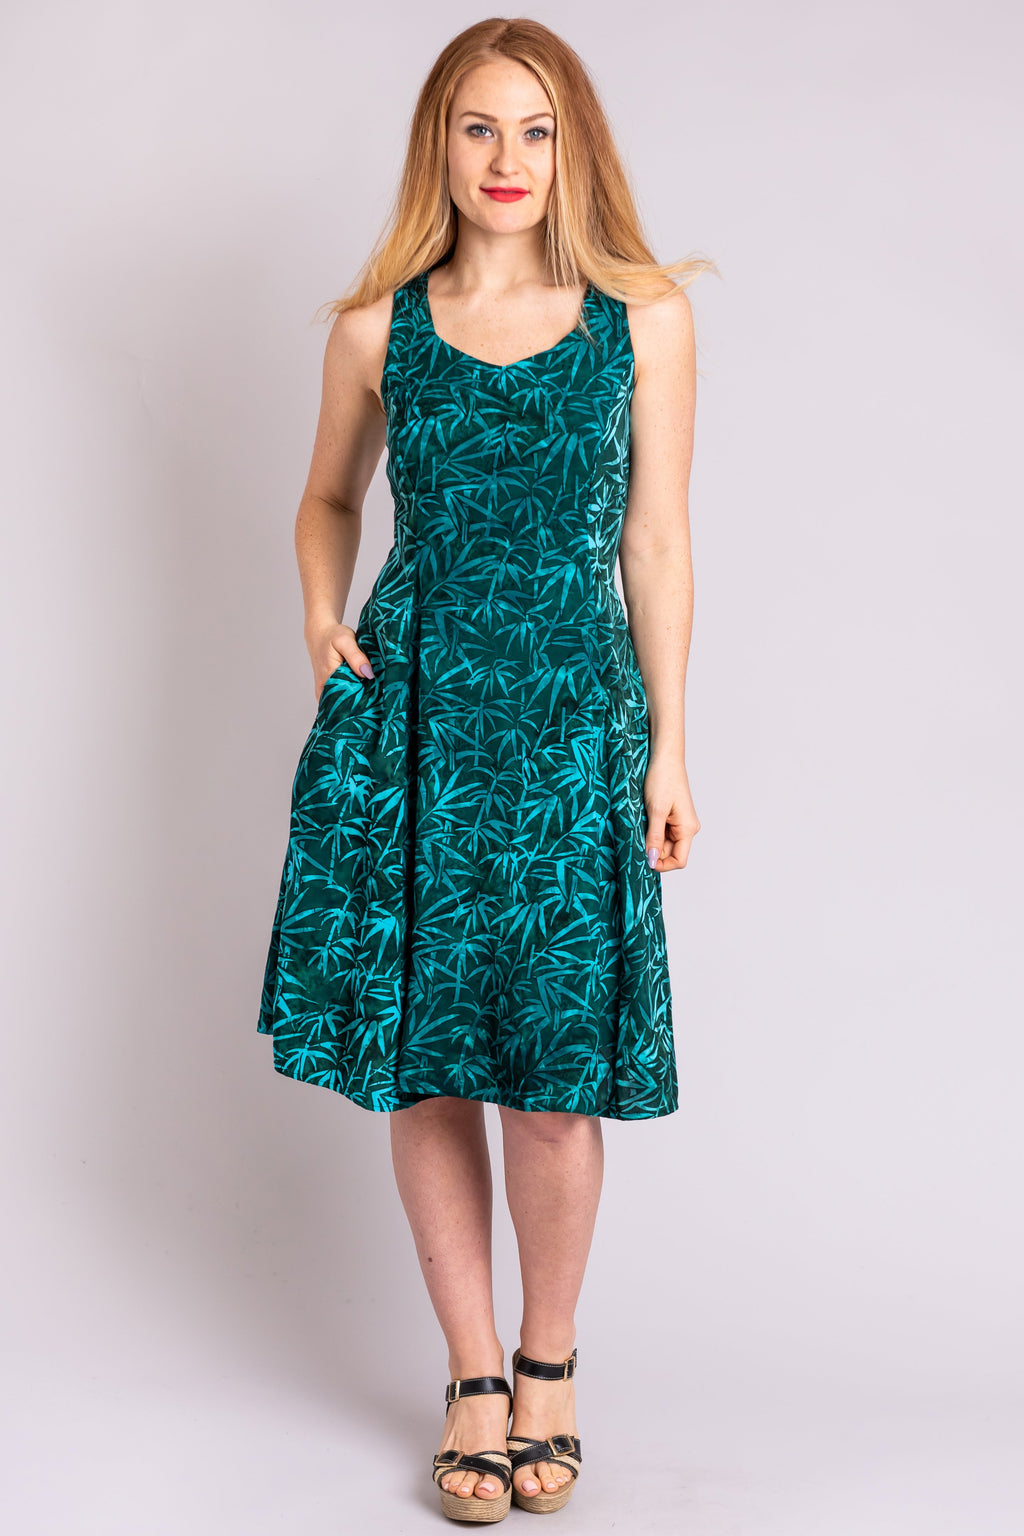 Sweet Sara Dress, Bamboo Forest, Batik Art - Blue Sky Clothing Co